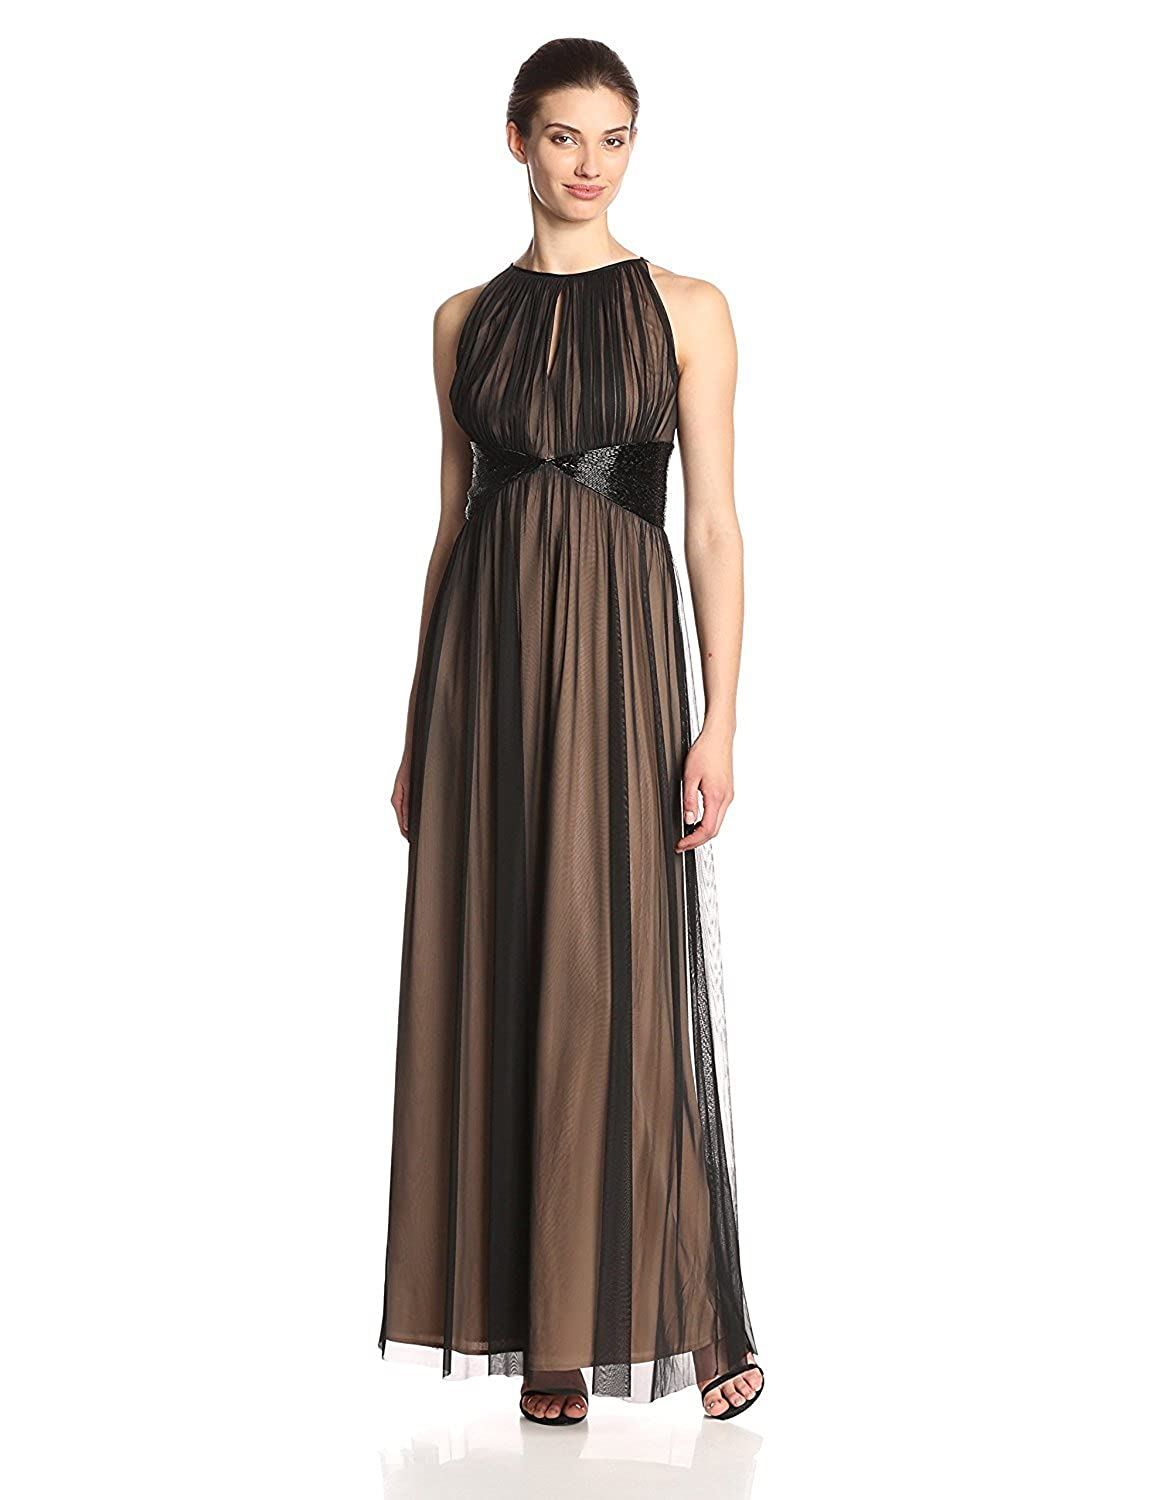 JS Boutique Women's Long Mesh Gown Contrast Color Lining and Tri Beads Black/Nude 6 [並行輸入品] B075CJS73Z